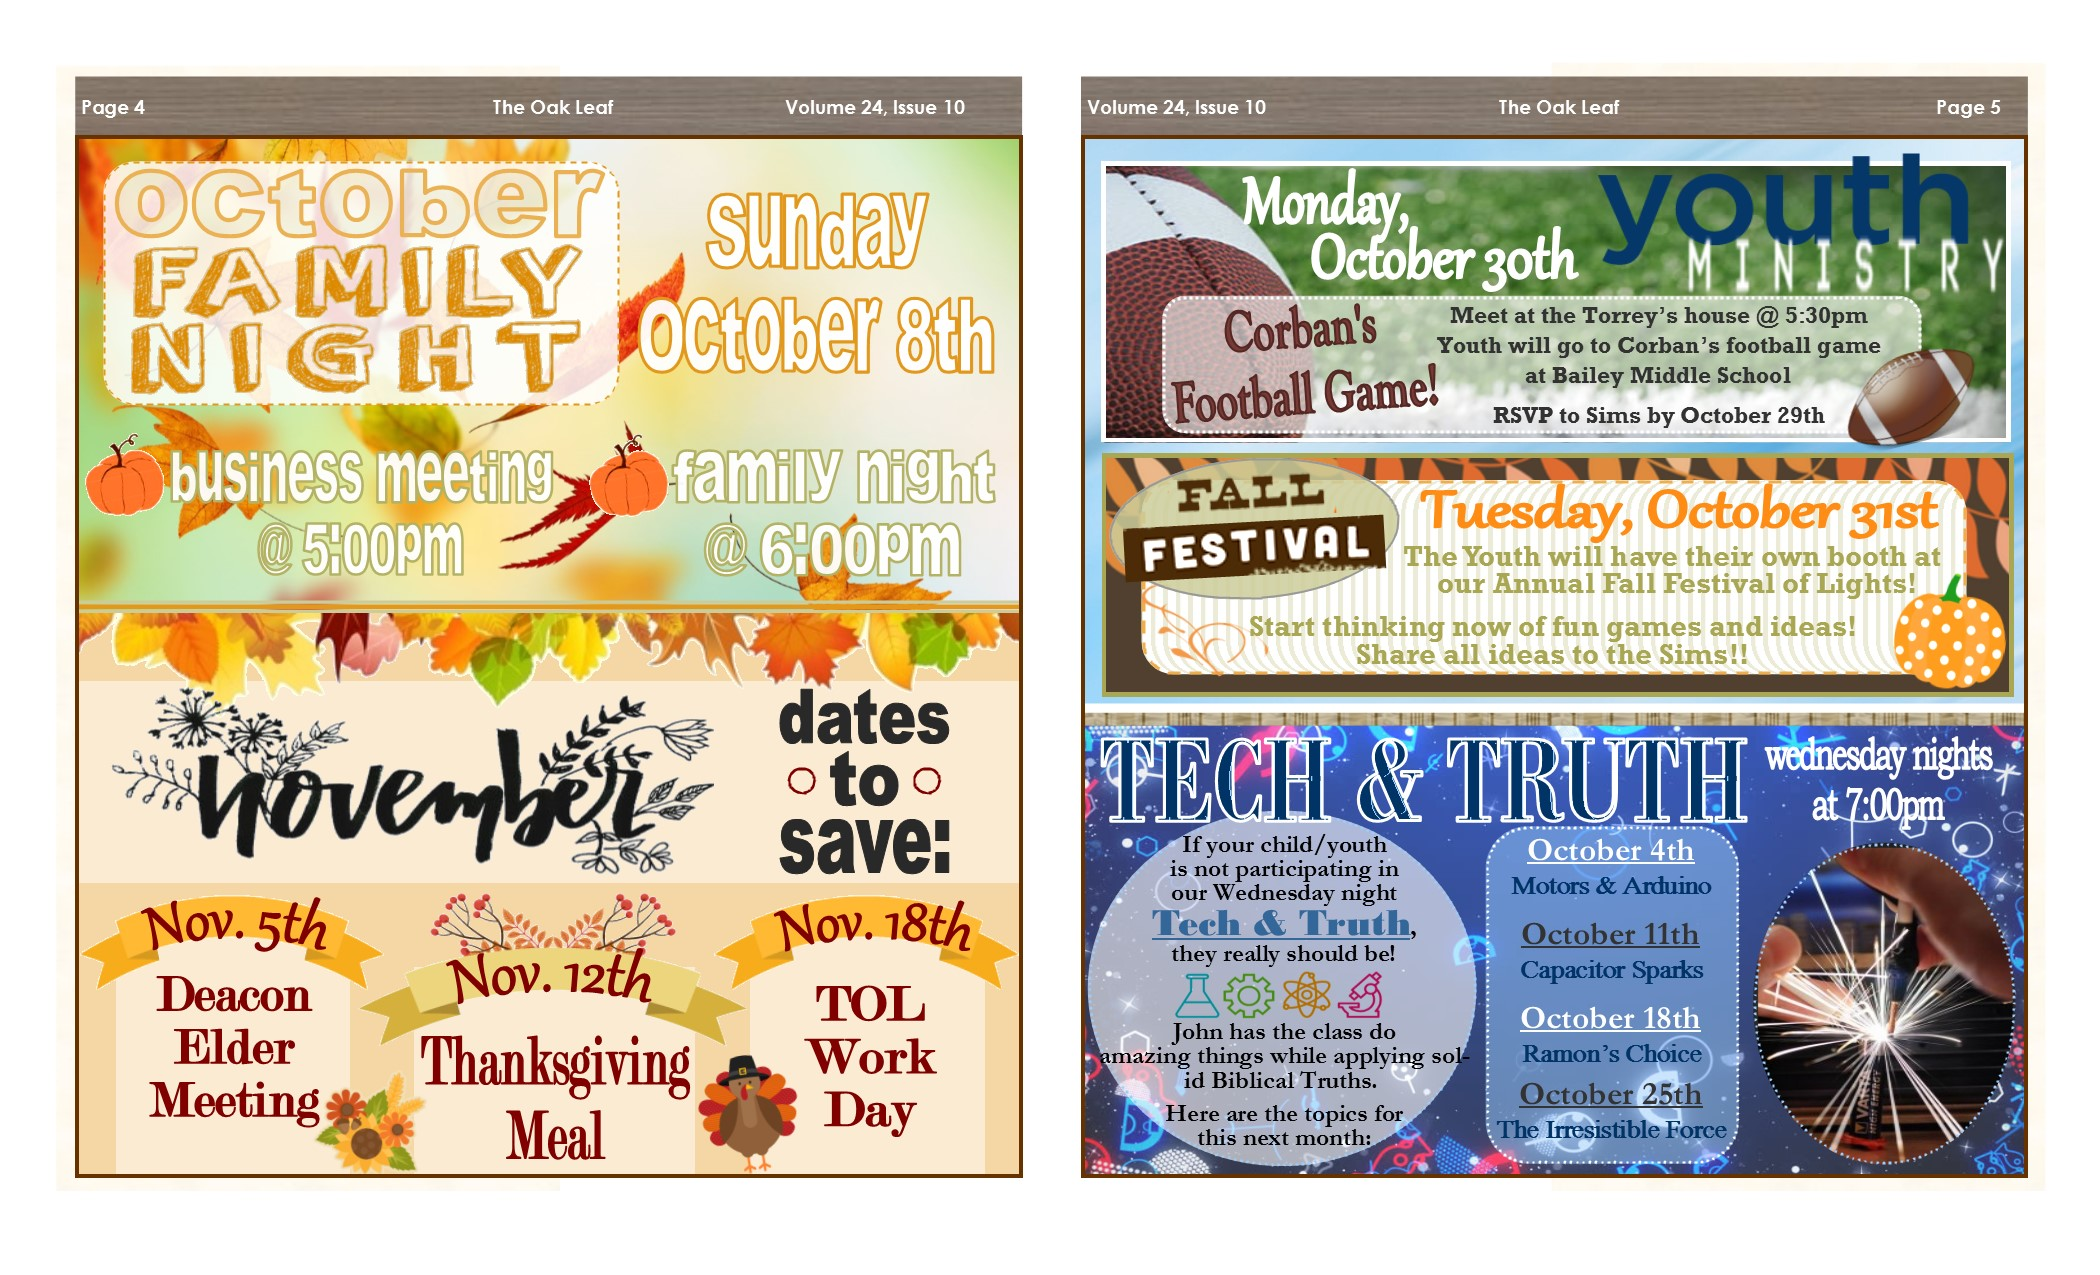 October 2017 Oak Leaf Newsletter – Texas Oaks Baptist Church